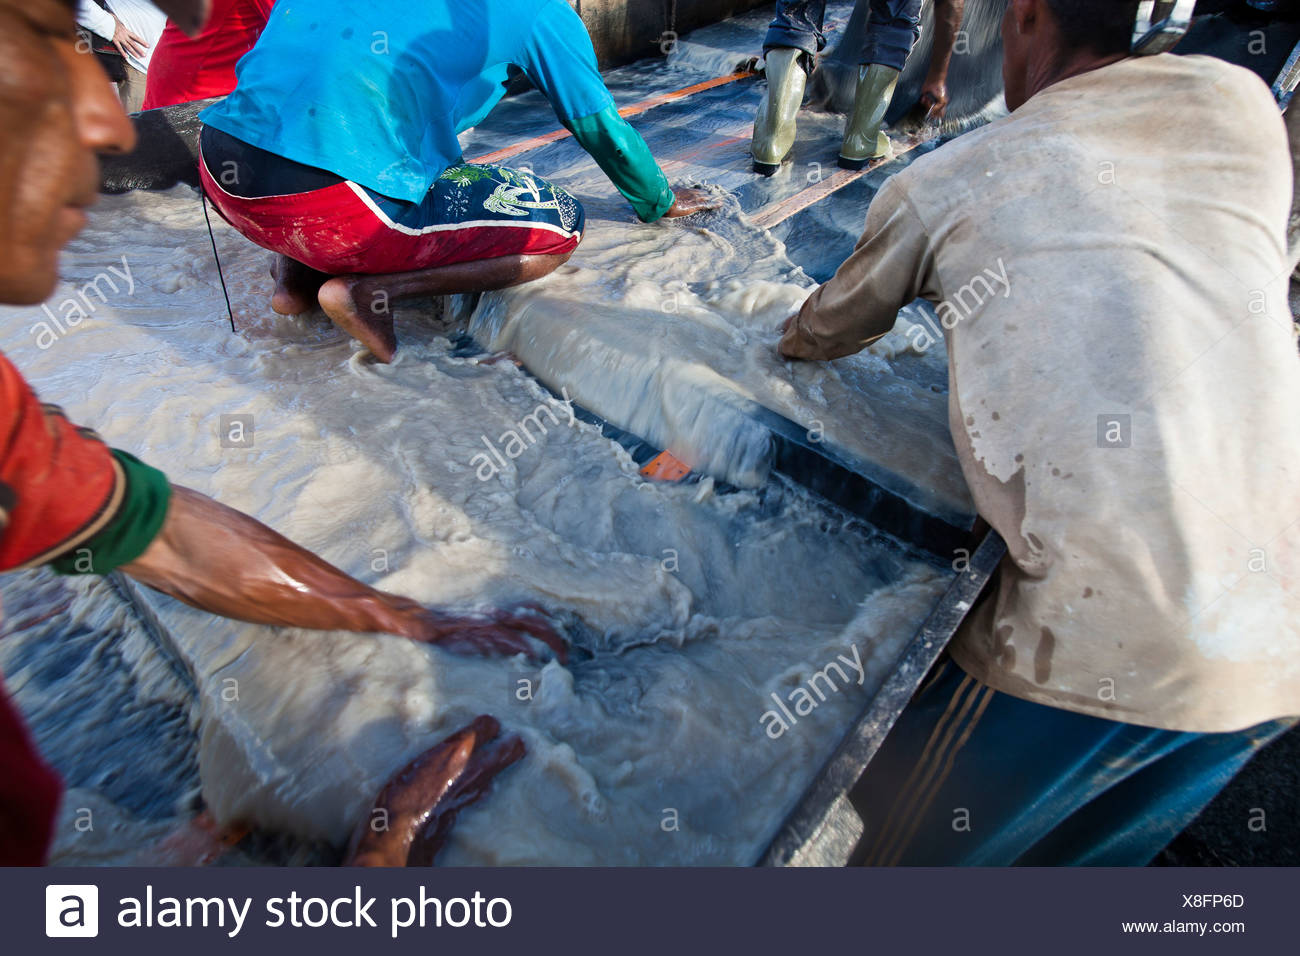 Amazon gold mining despescagem  removal of material collected in the sluice box by using mercury to amalgamate with the metal - Stock Image